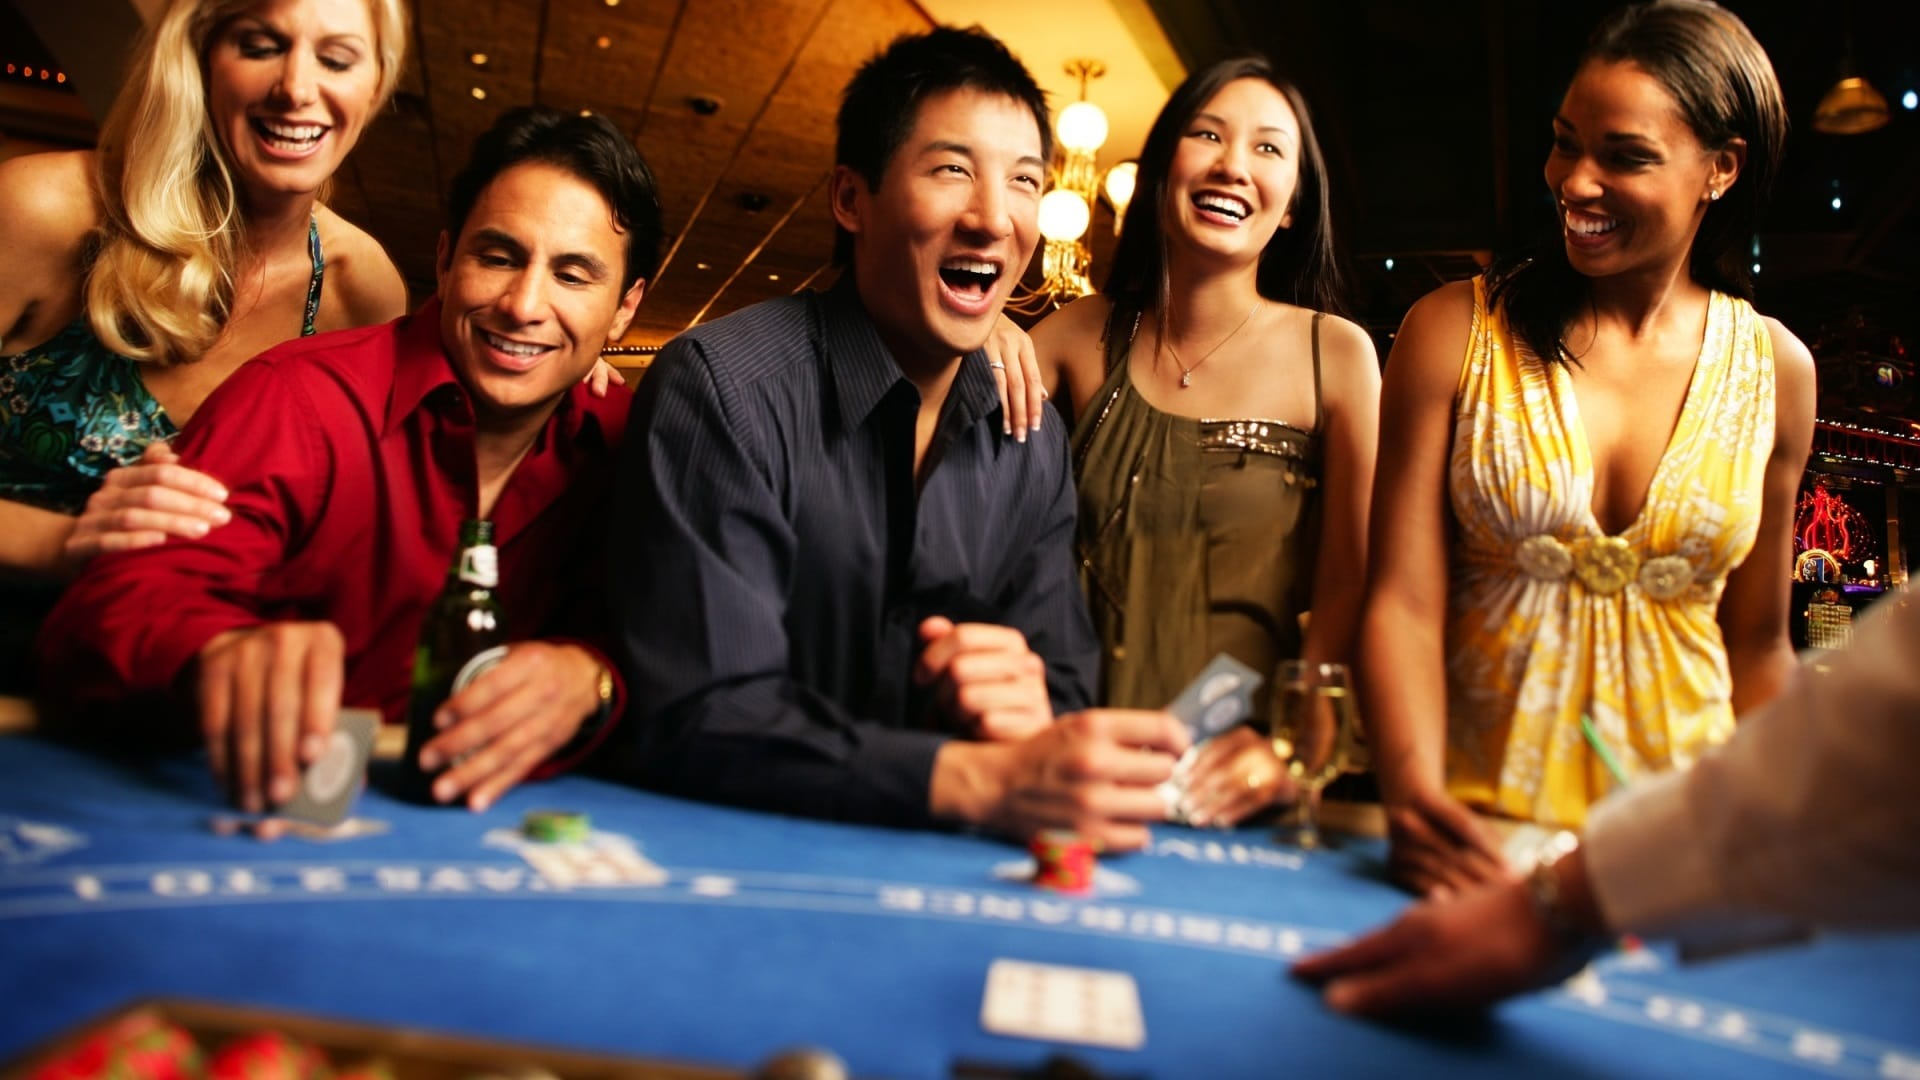 Which casino game would suit my interest as a beginner?